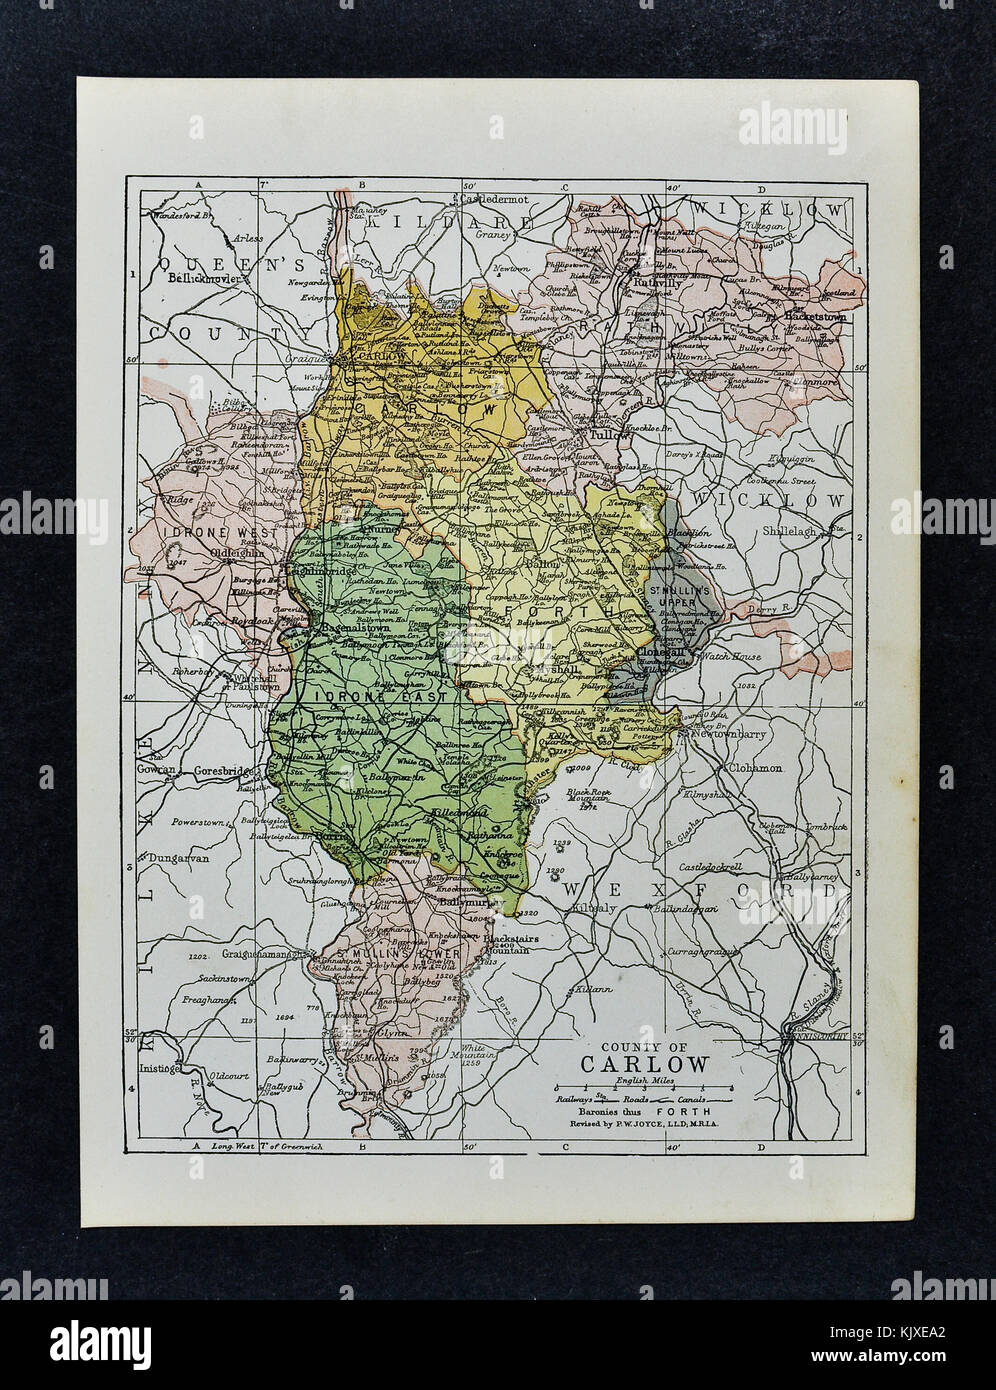 Antique Ireland Map Carlow County Tullow Clonegall Bagenalstown